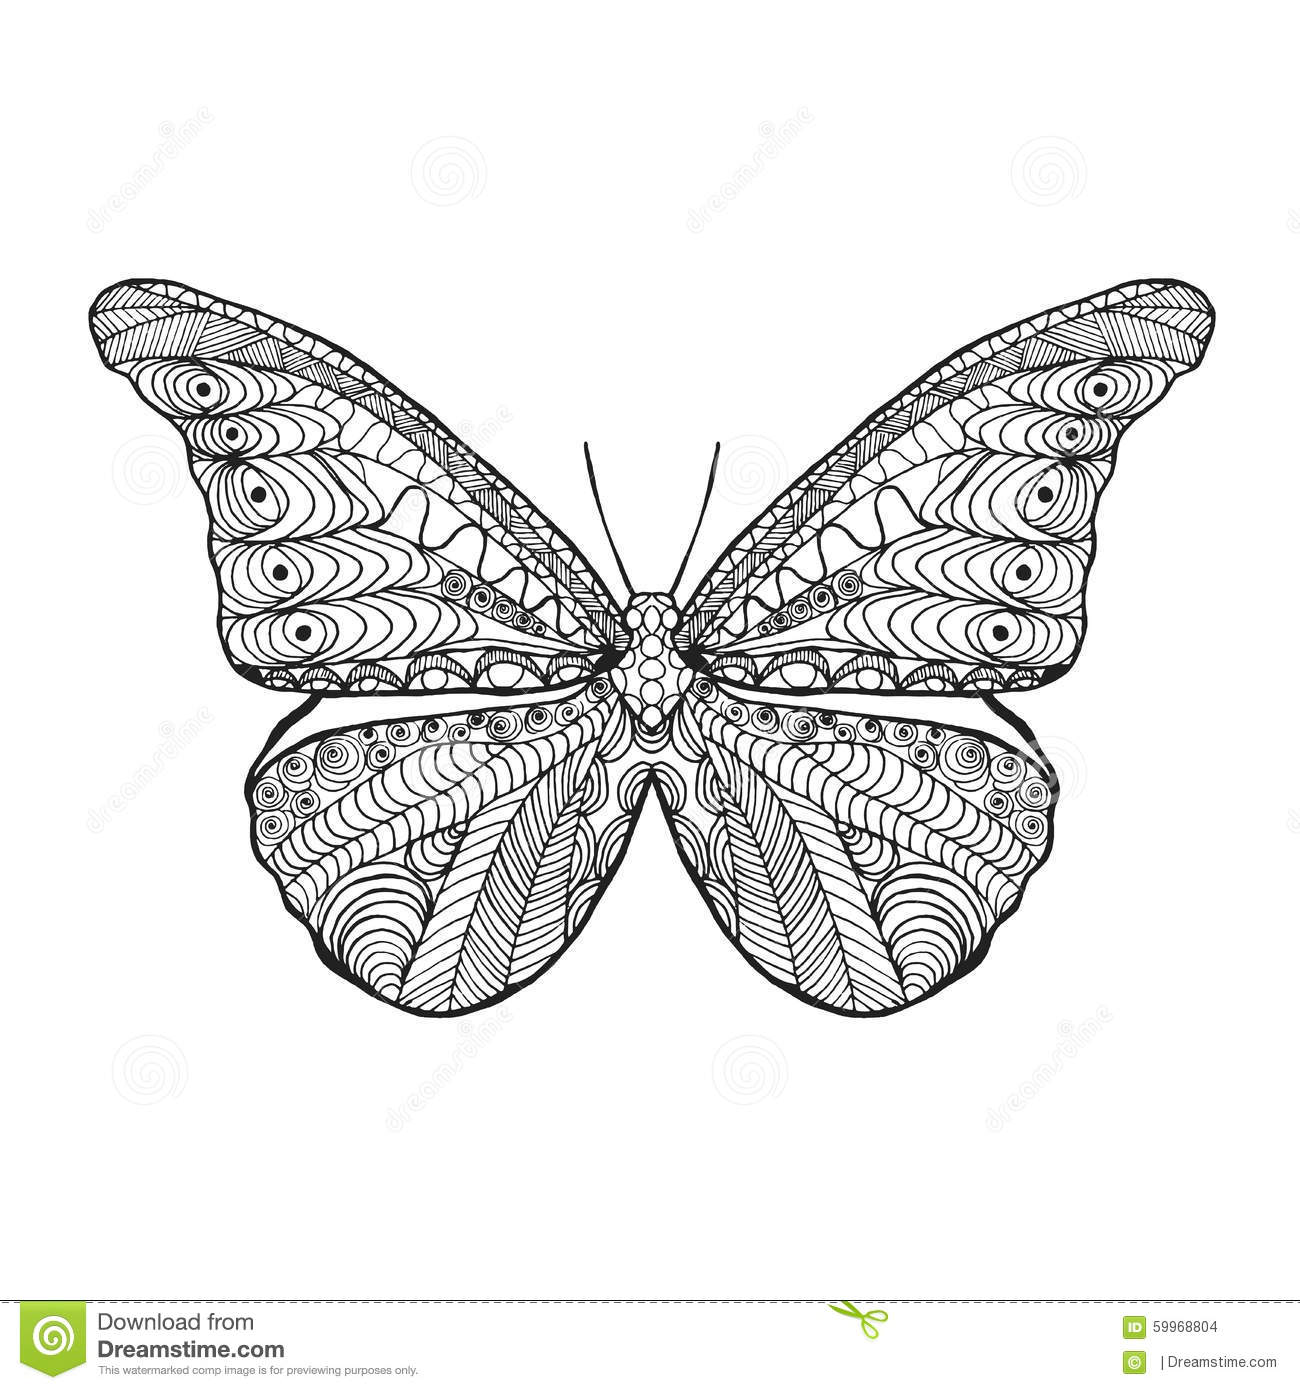 Vlinders Kleurplaat Volwassene Zentangle Stylized Butterfly Stock Vector Image 59968804